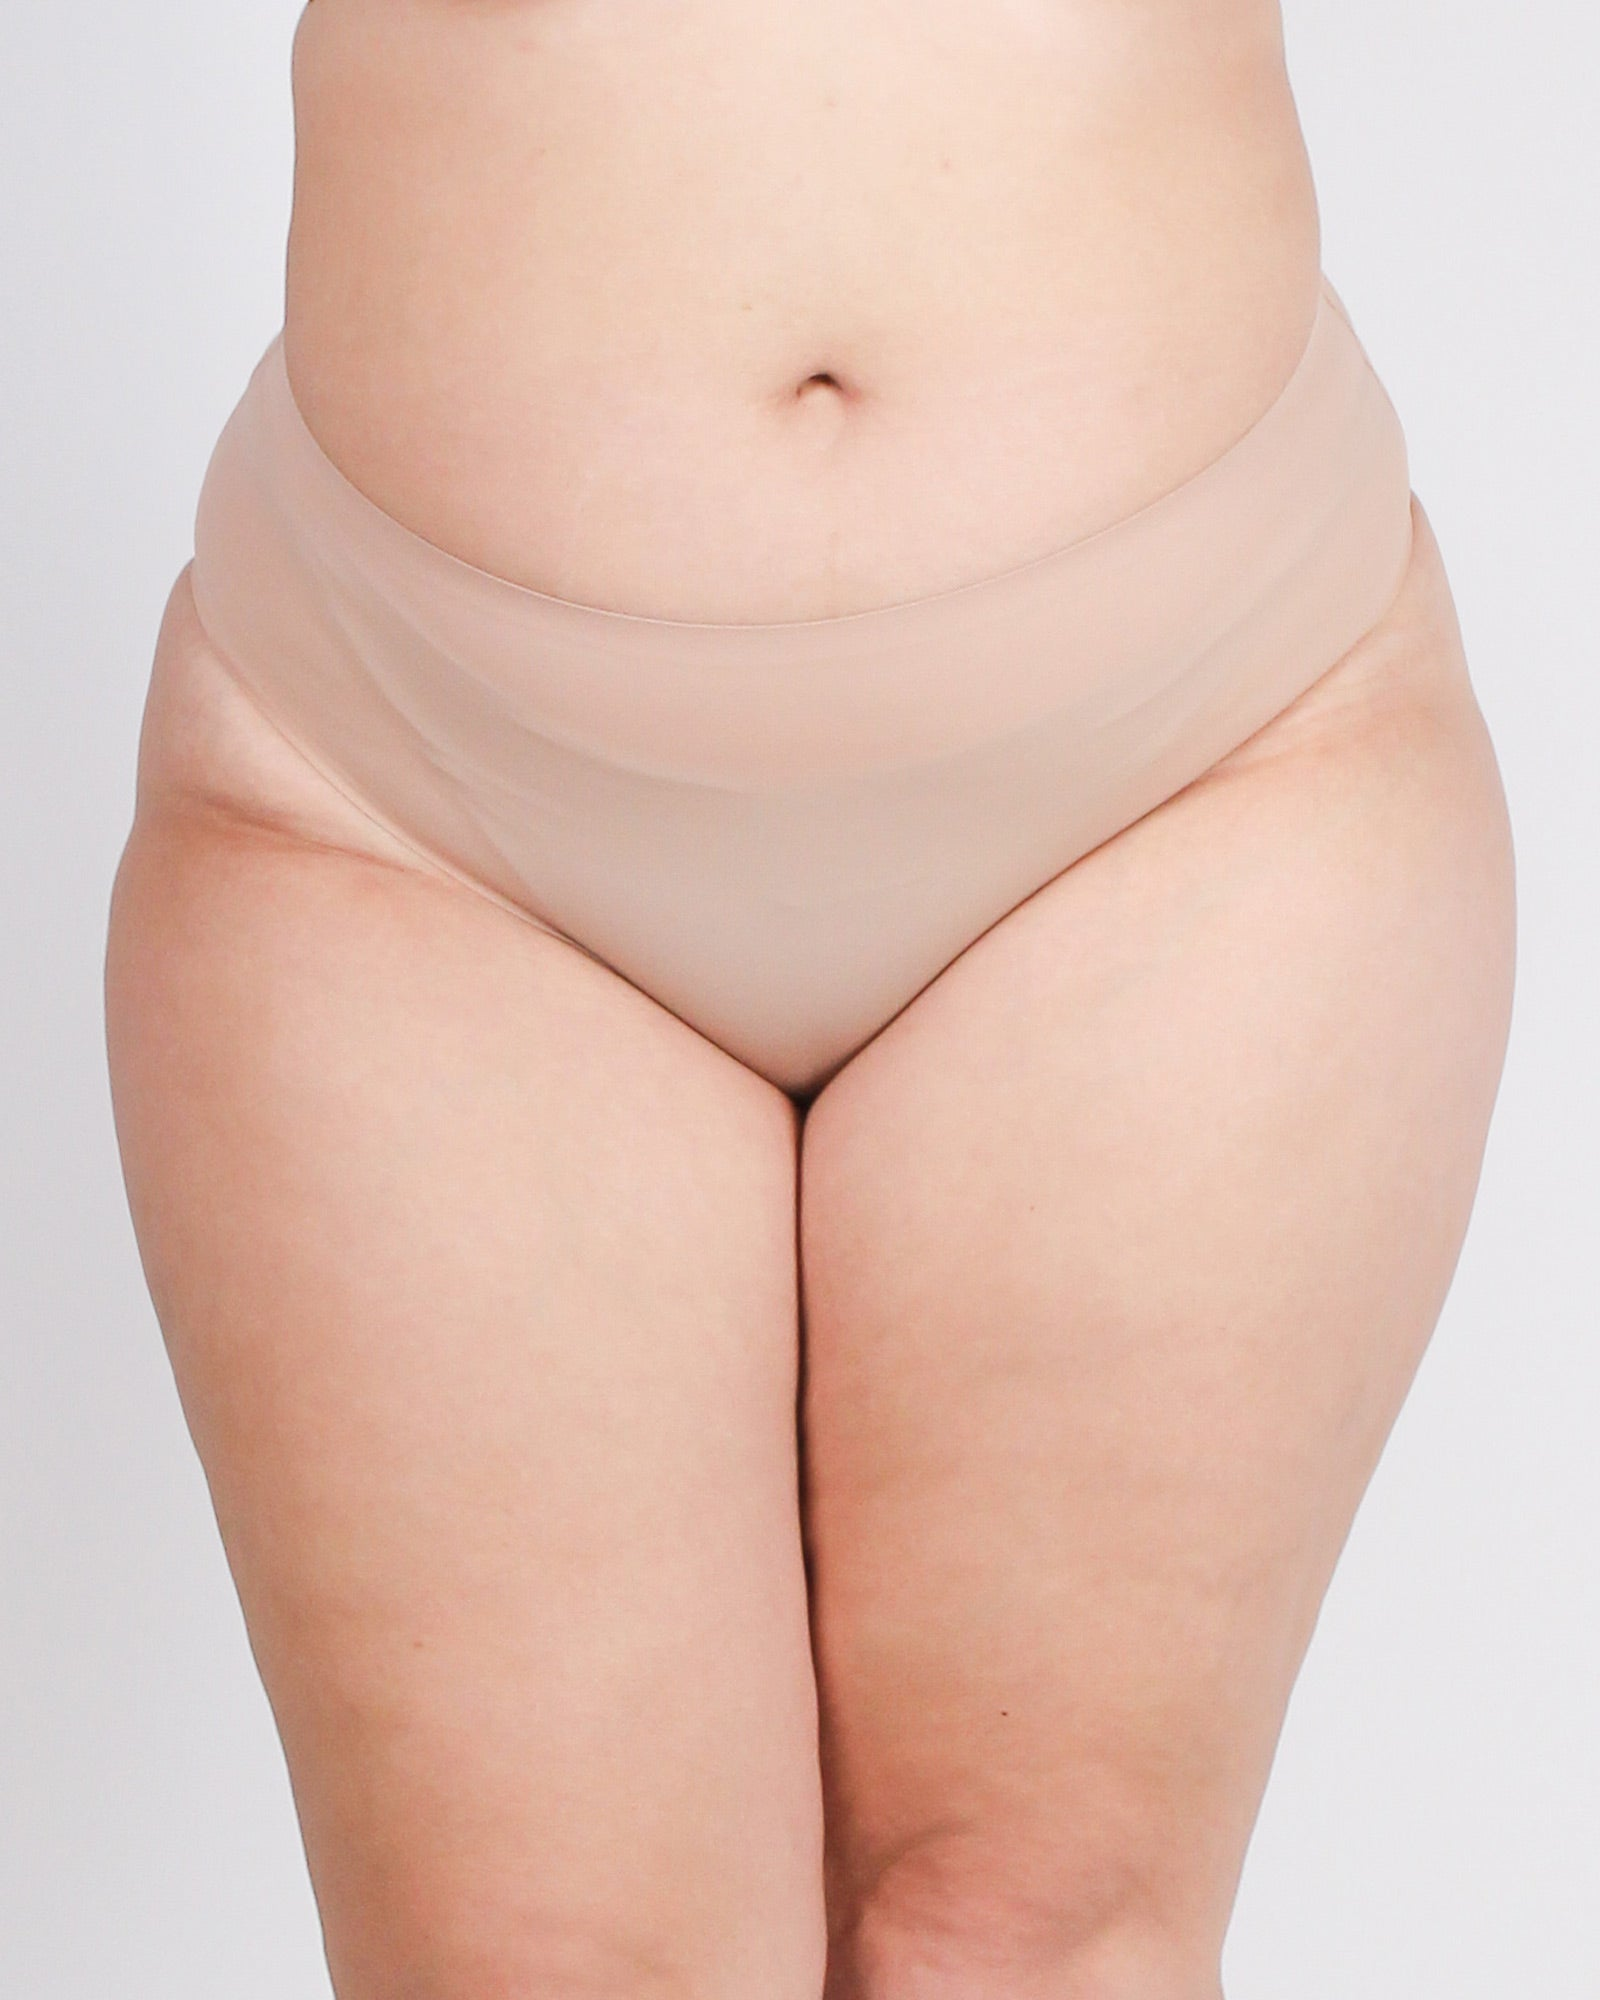 Fashion Q Shop Q Shh! Our Little Secret Plus Panties (Nude) 7998-BF